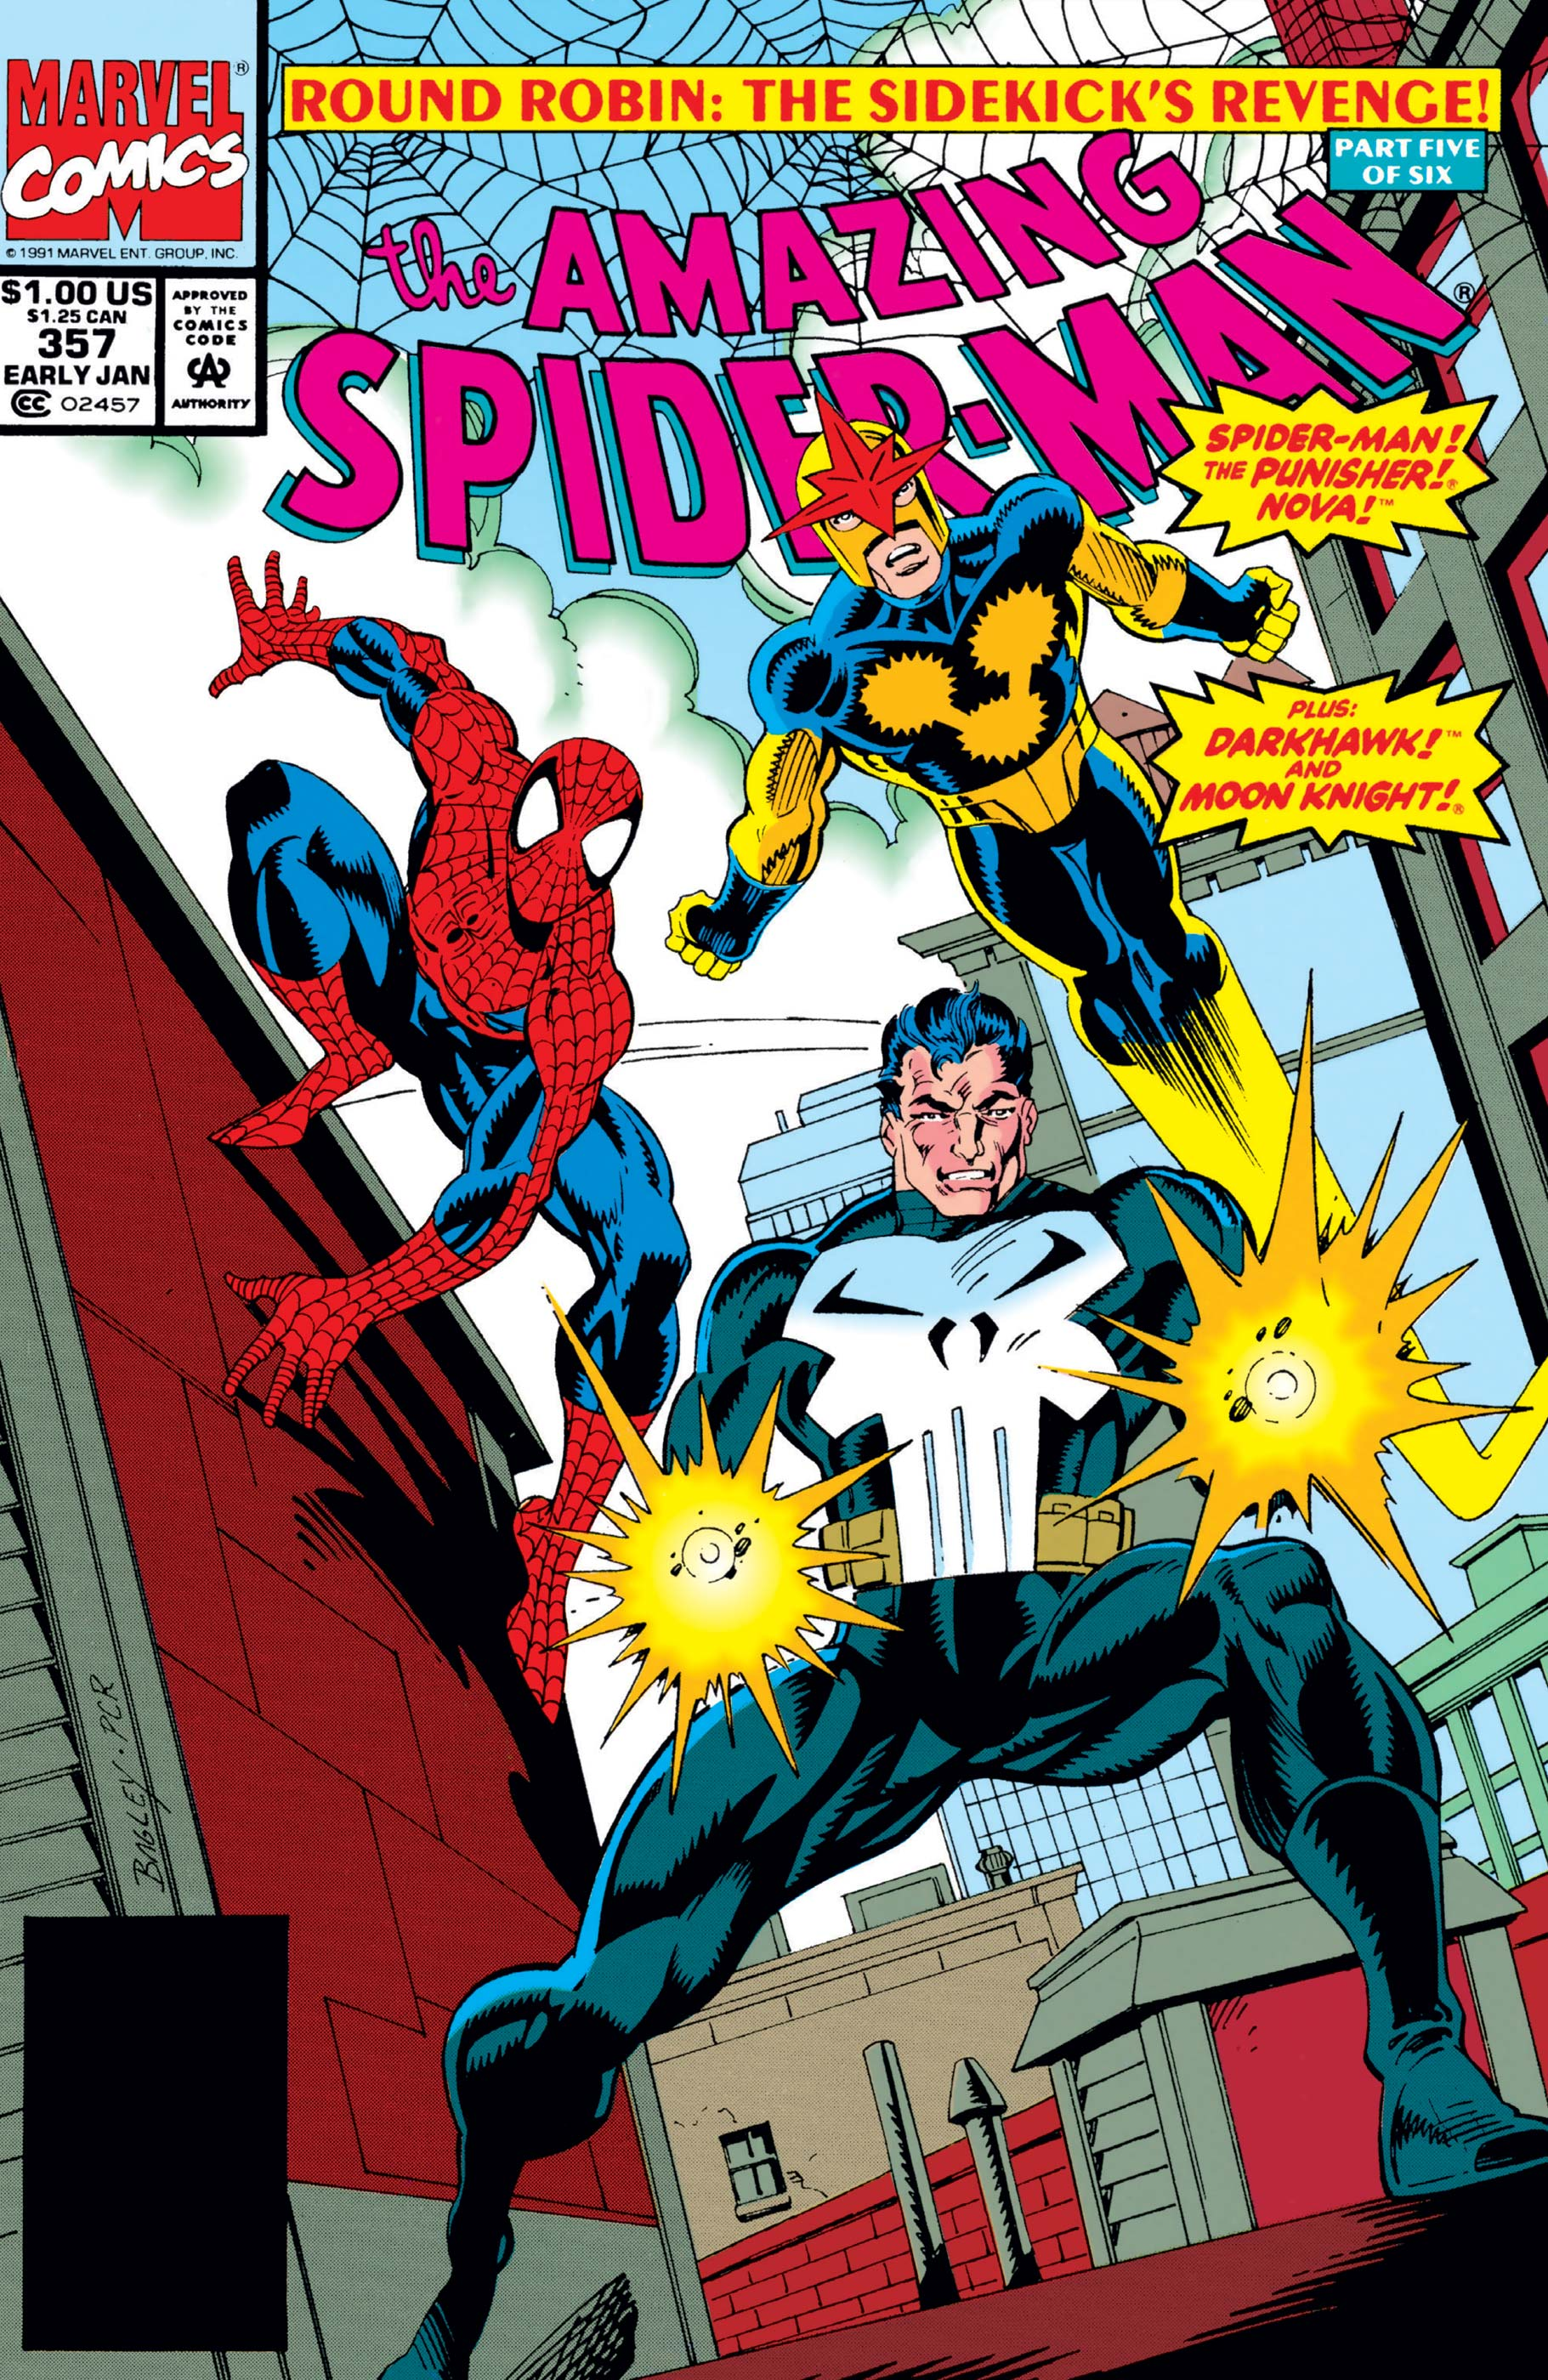 The Amazing Spider-Man (1963) #357